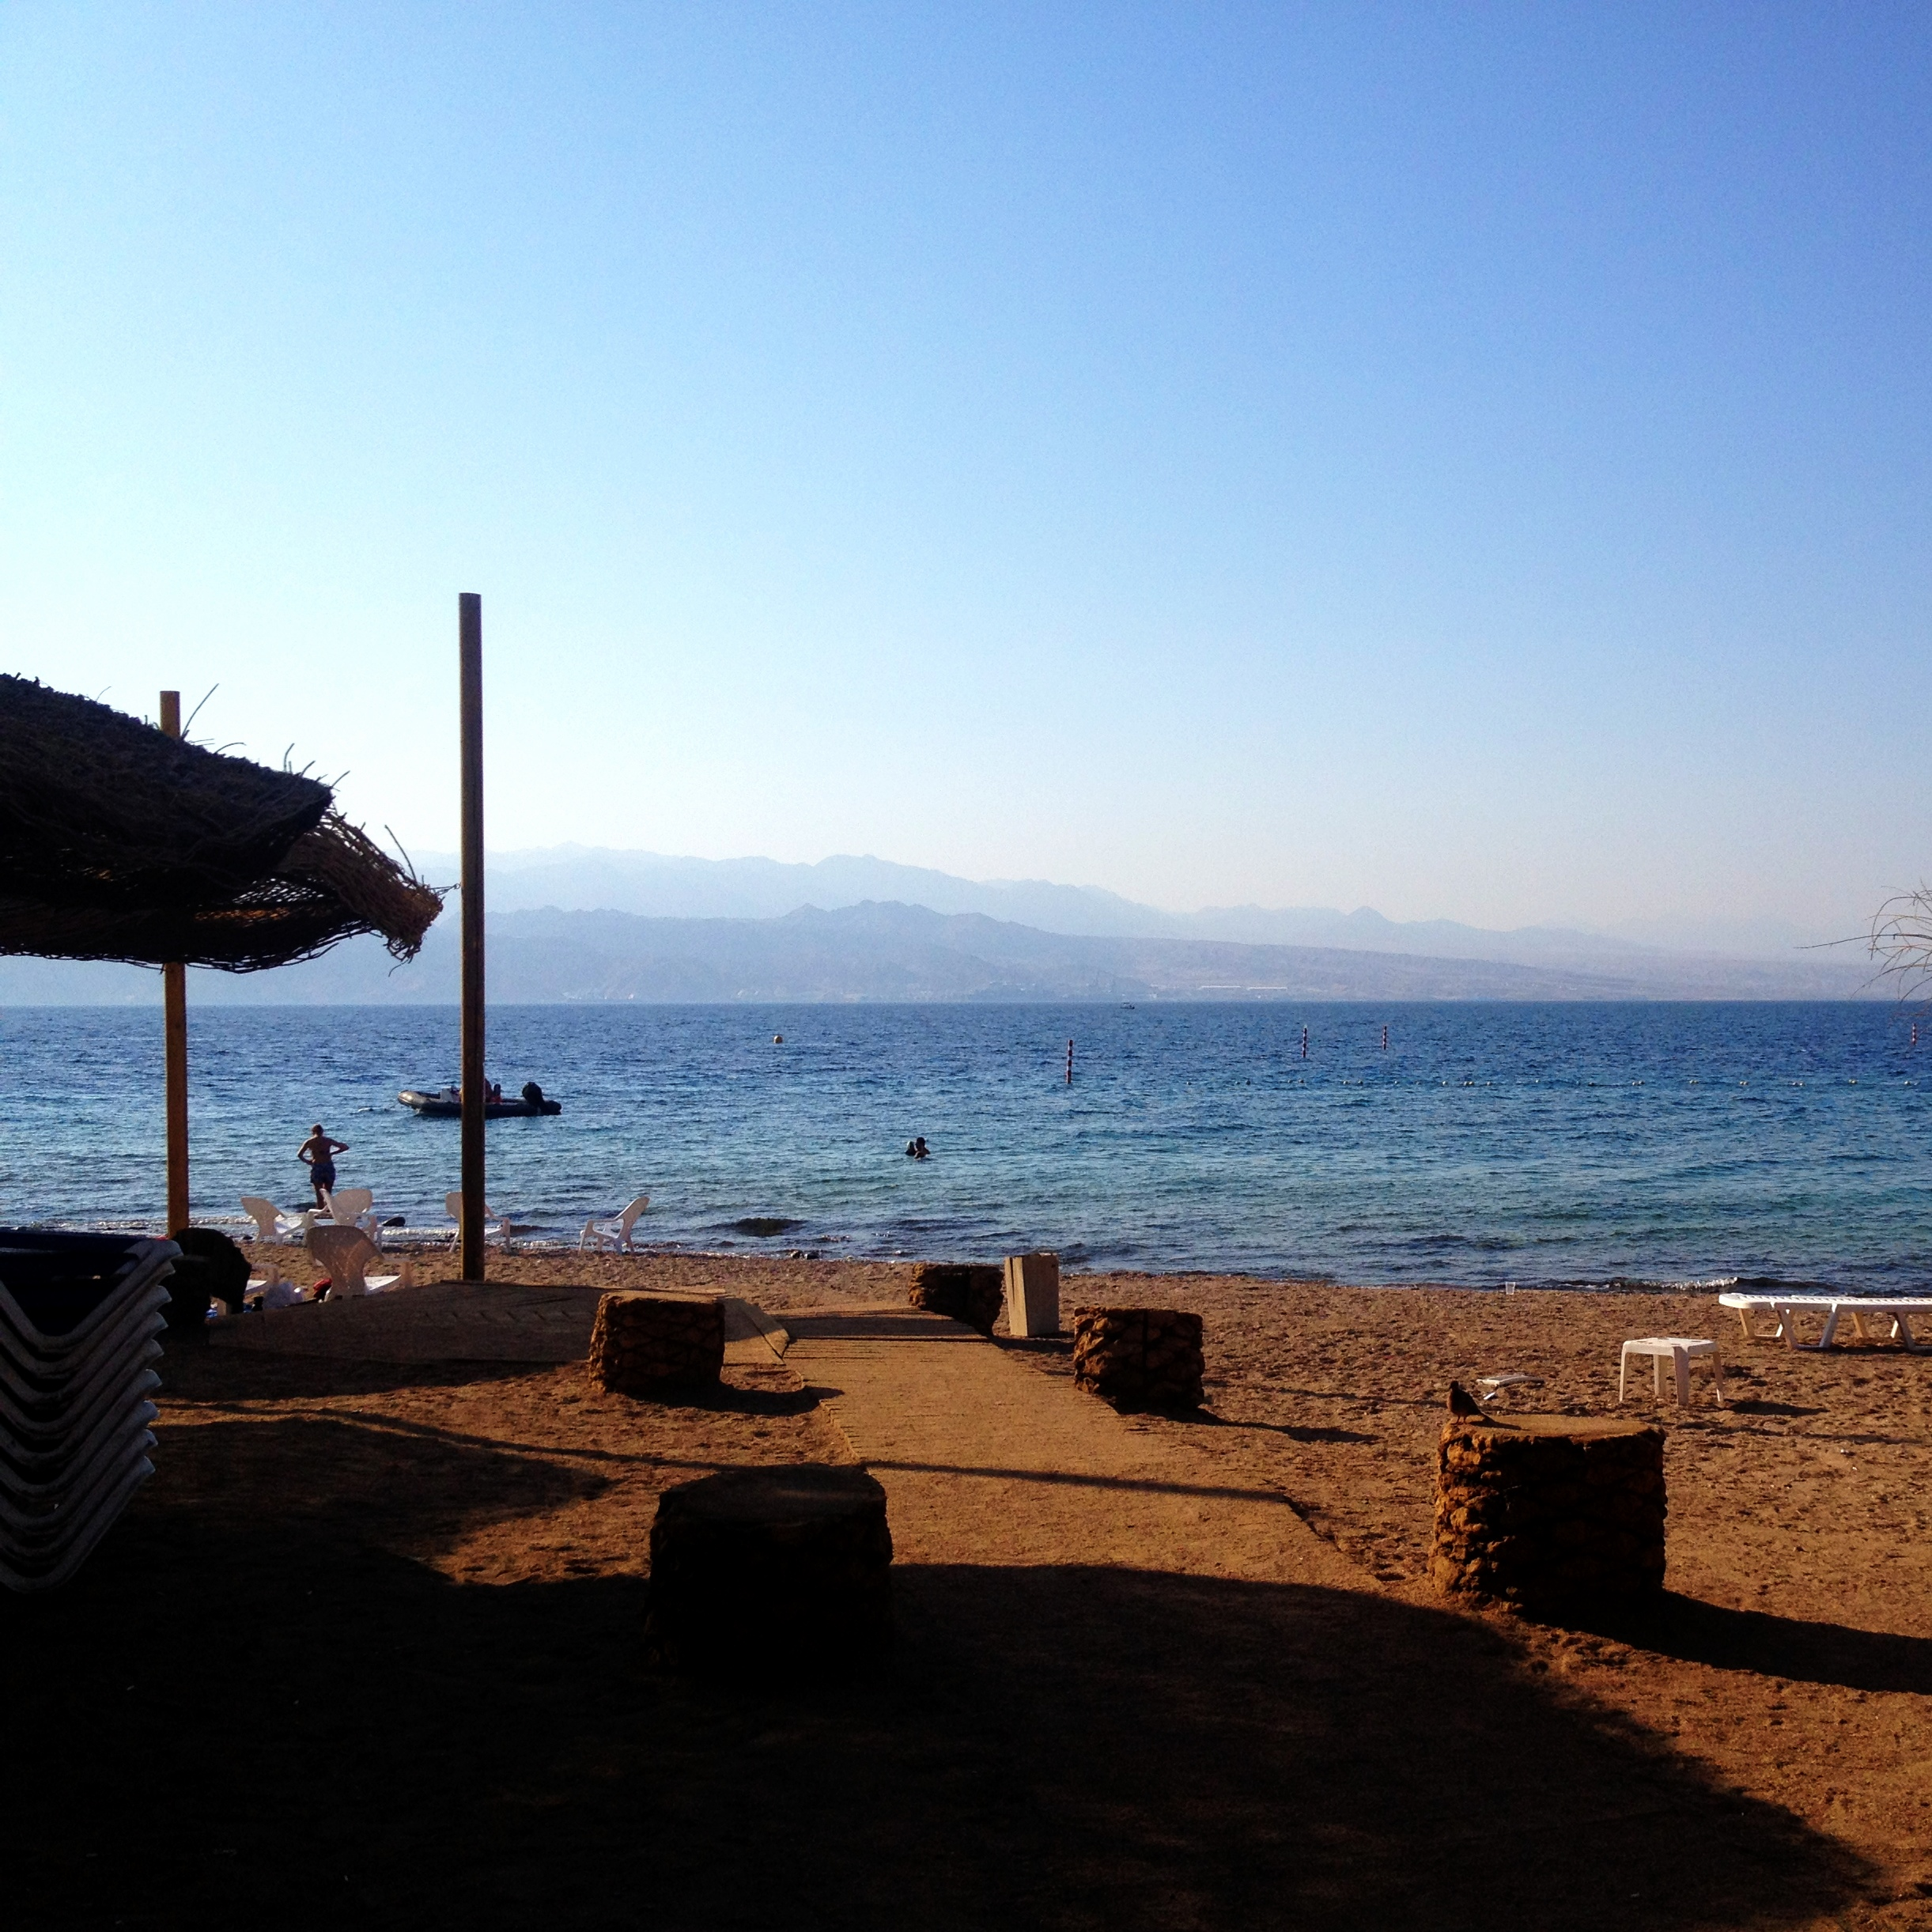 View of the Red Sea from Eilat